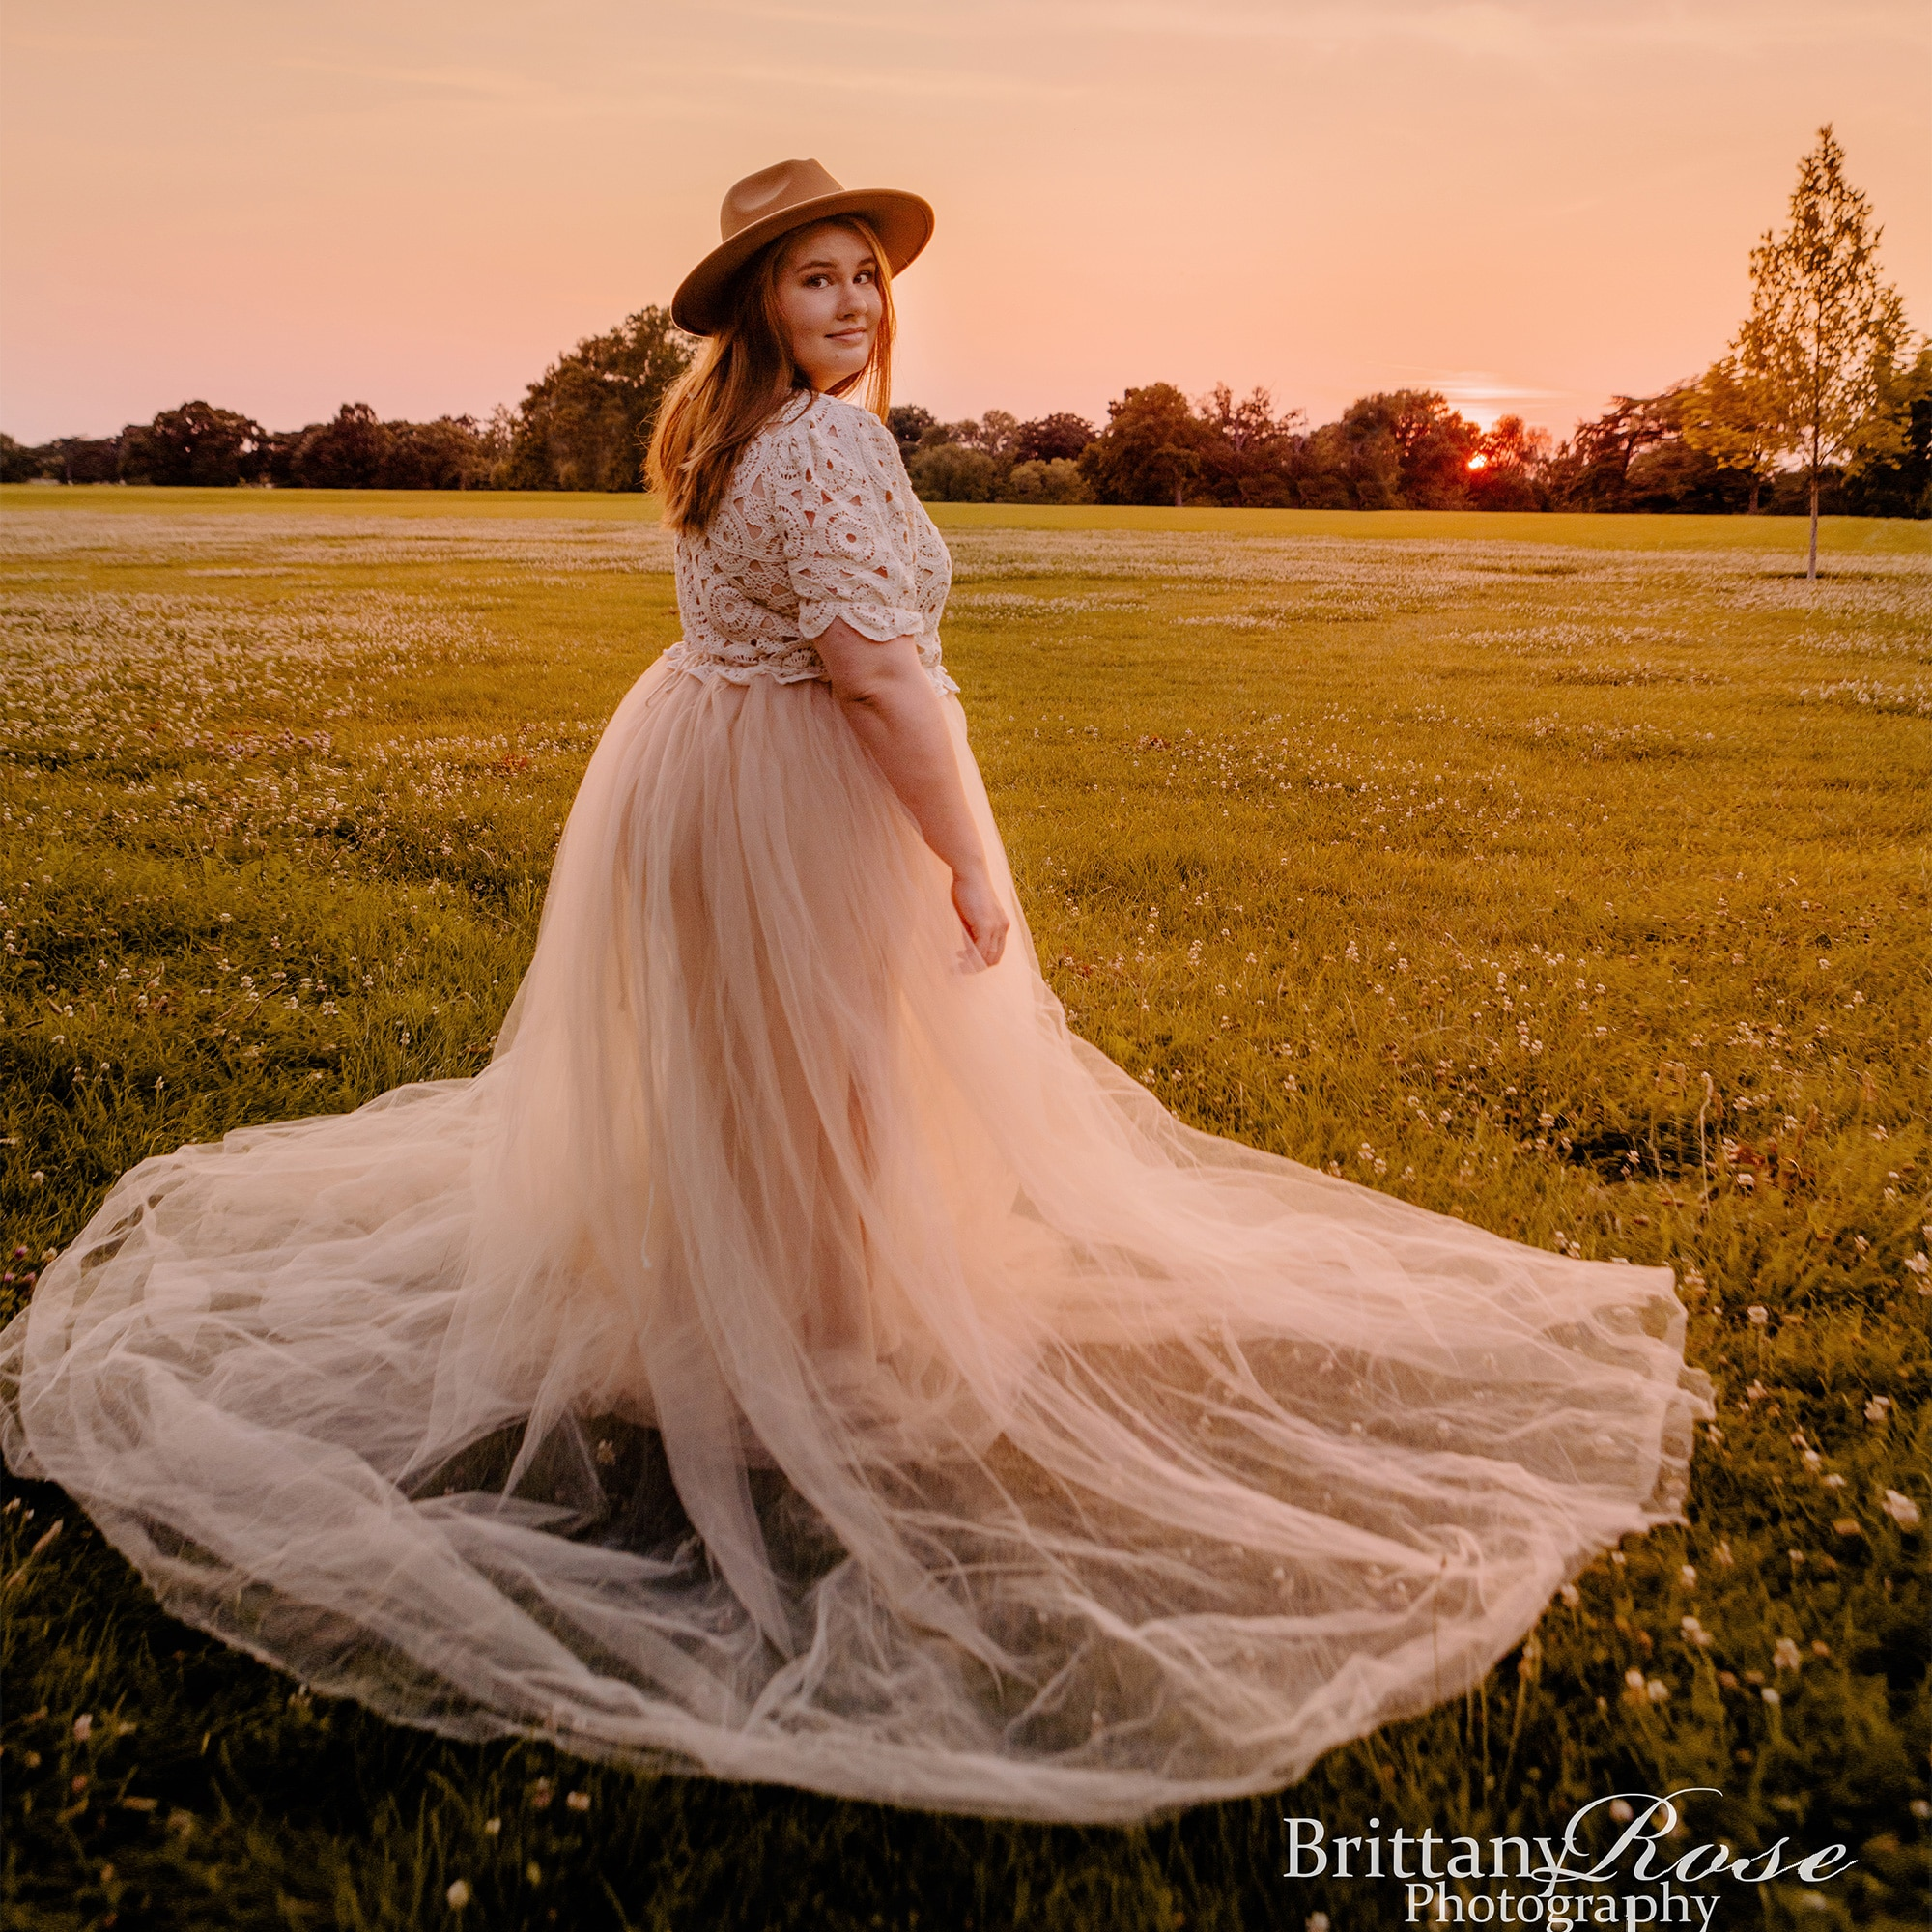 Don&Judy Elegant Tulle Maternity or Non Maternity Dress See Through Photo Shoot Retro BOHO Dress Gown for Baby Showers Plus Size